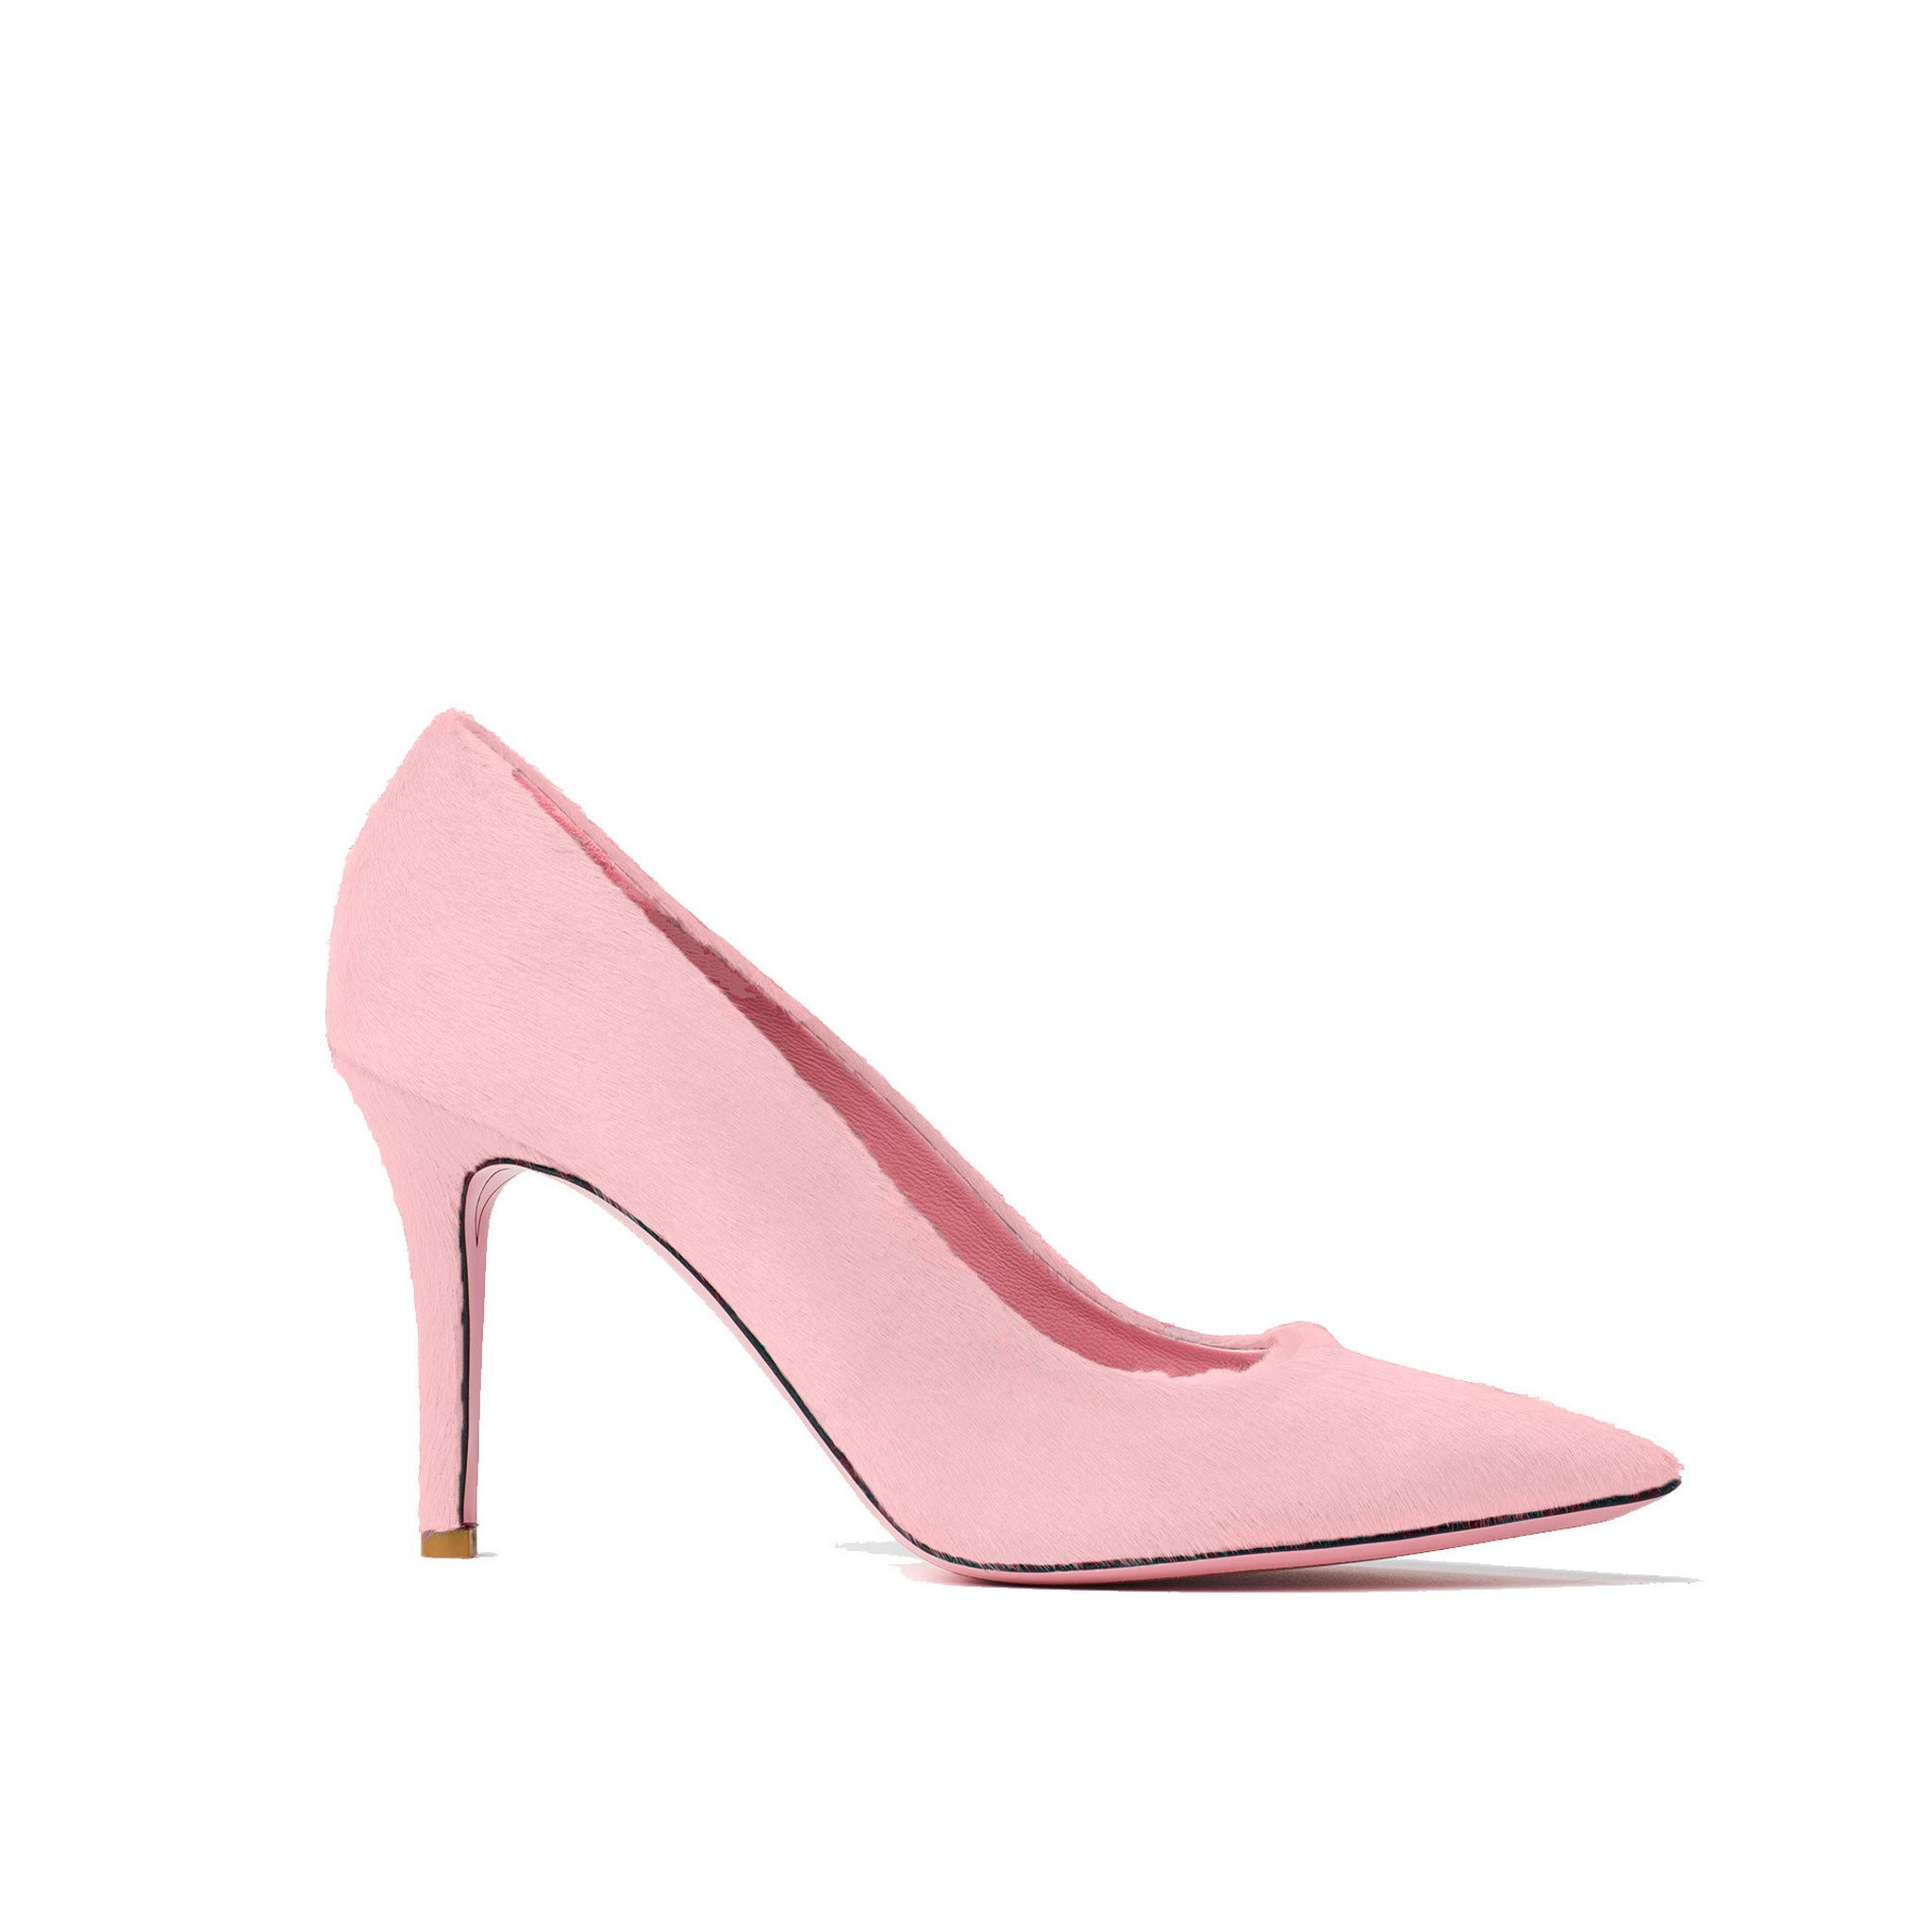 Phare slim heel pump in rosa pony hair